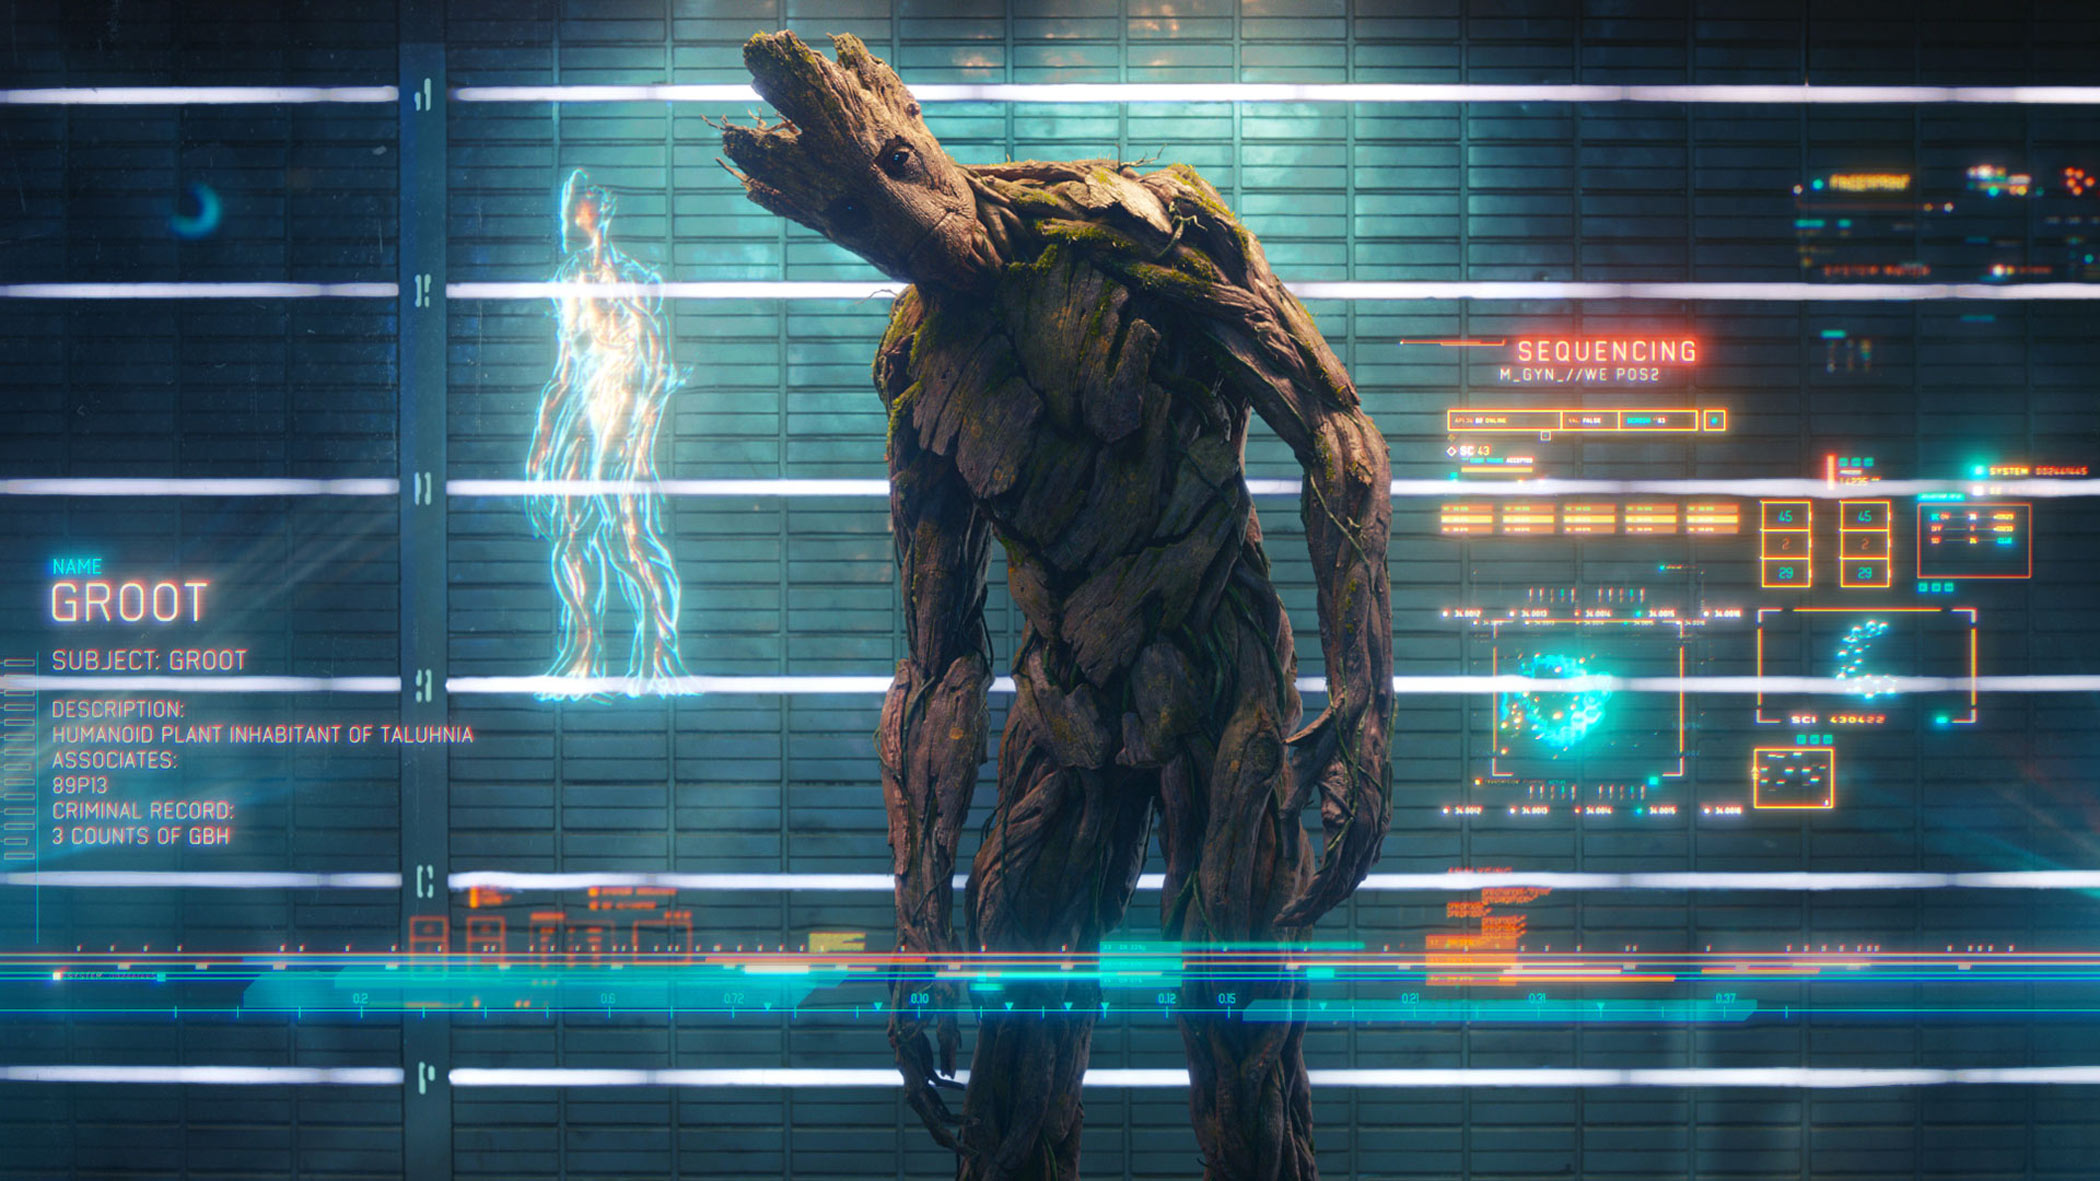 By Stephen Comments Off on Guardians Of The Galaxy Groot Wallpapers 2100x1181